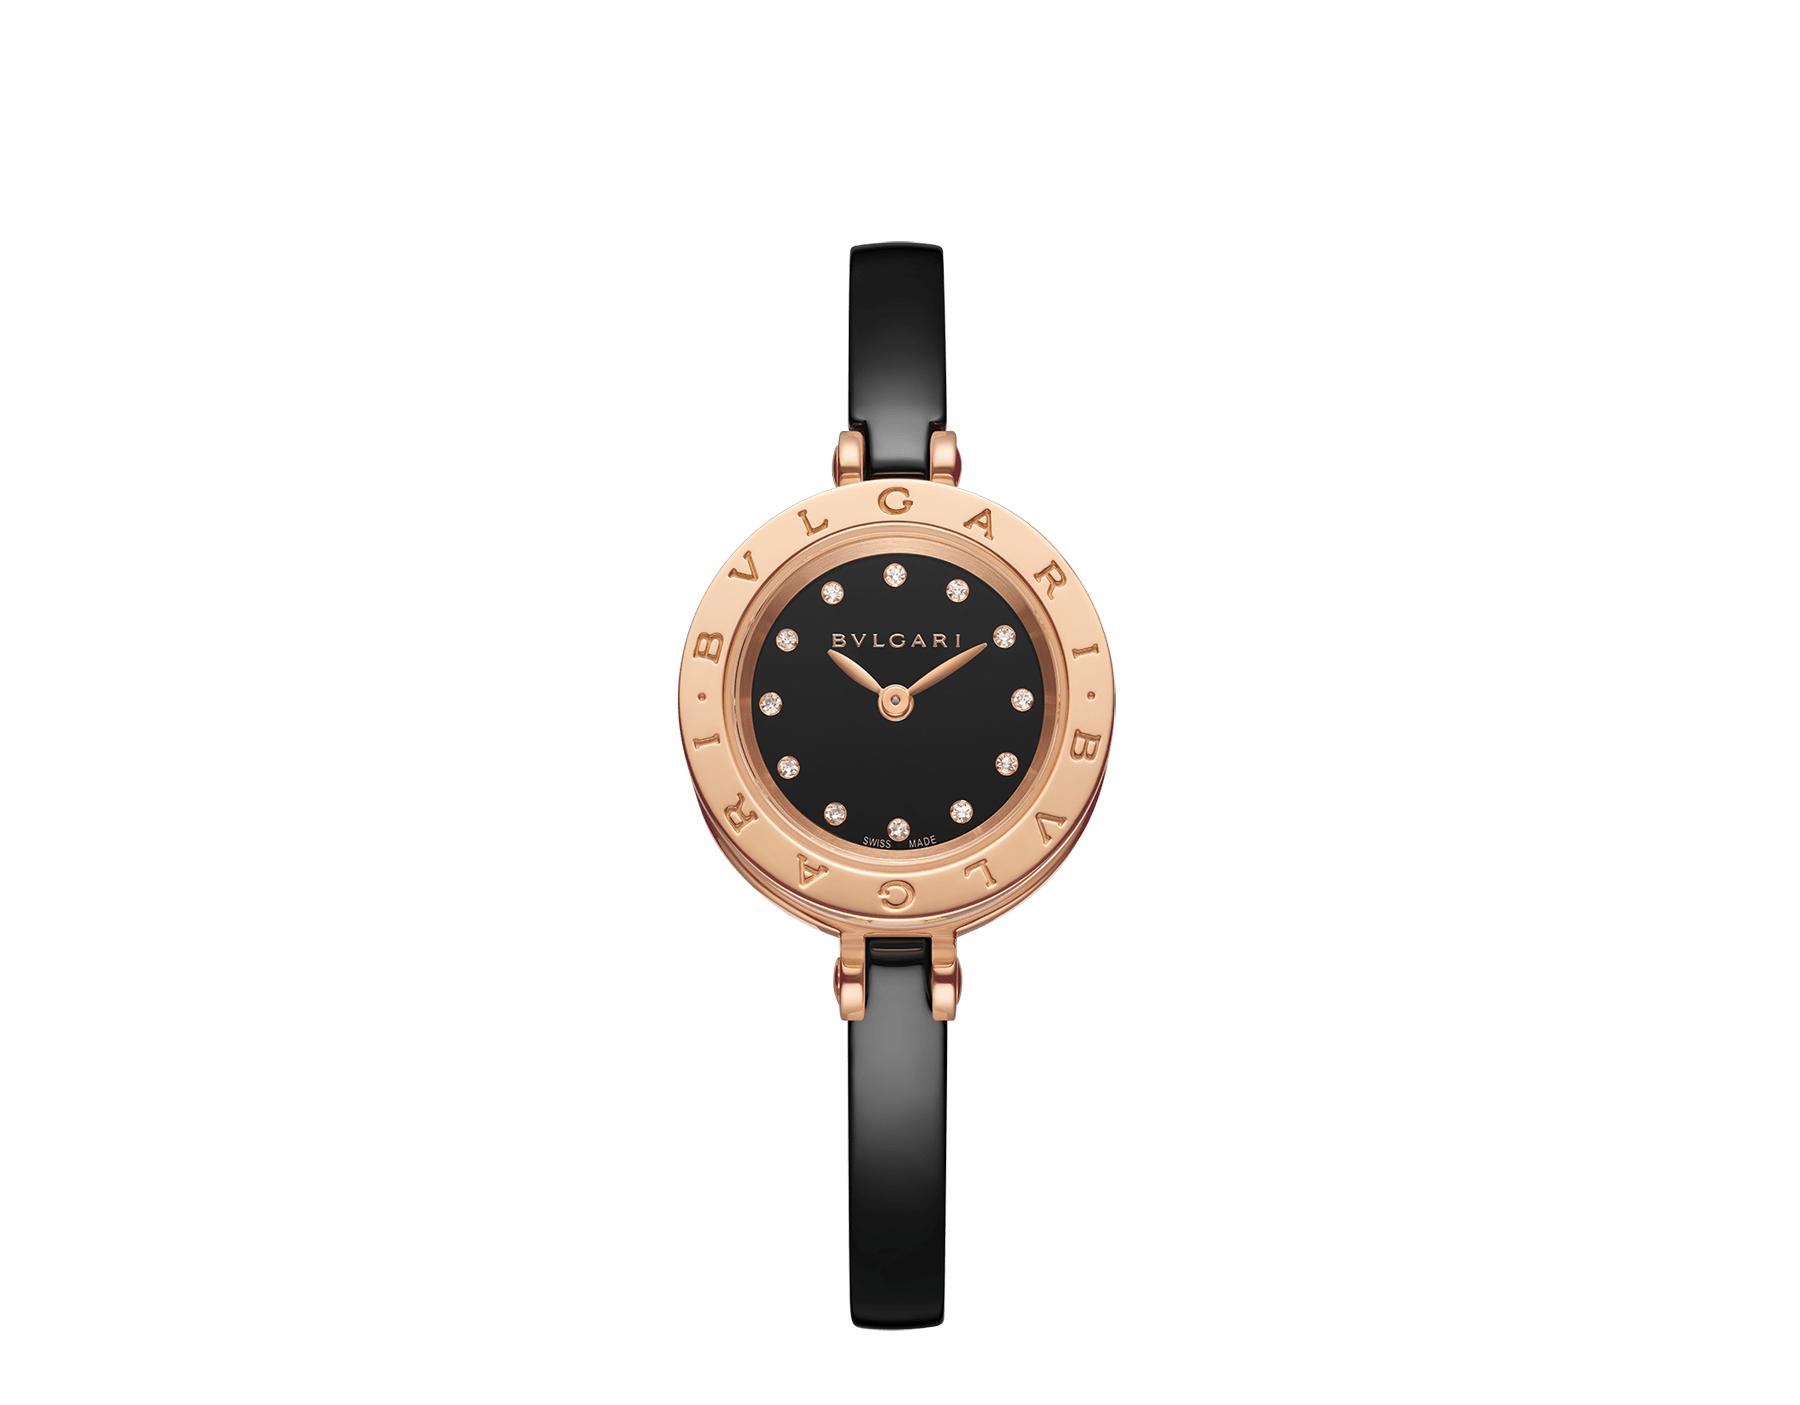 B.zero1 watch with 18 kt rose gold and black ceramic case, black lacquered dial set with diamond indexes, black ceramic bangle and 18 kt rose gold clasp. B01watch-black-black-dial2 image 1